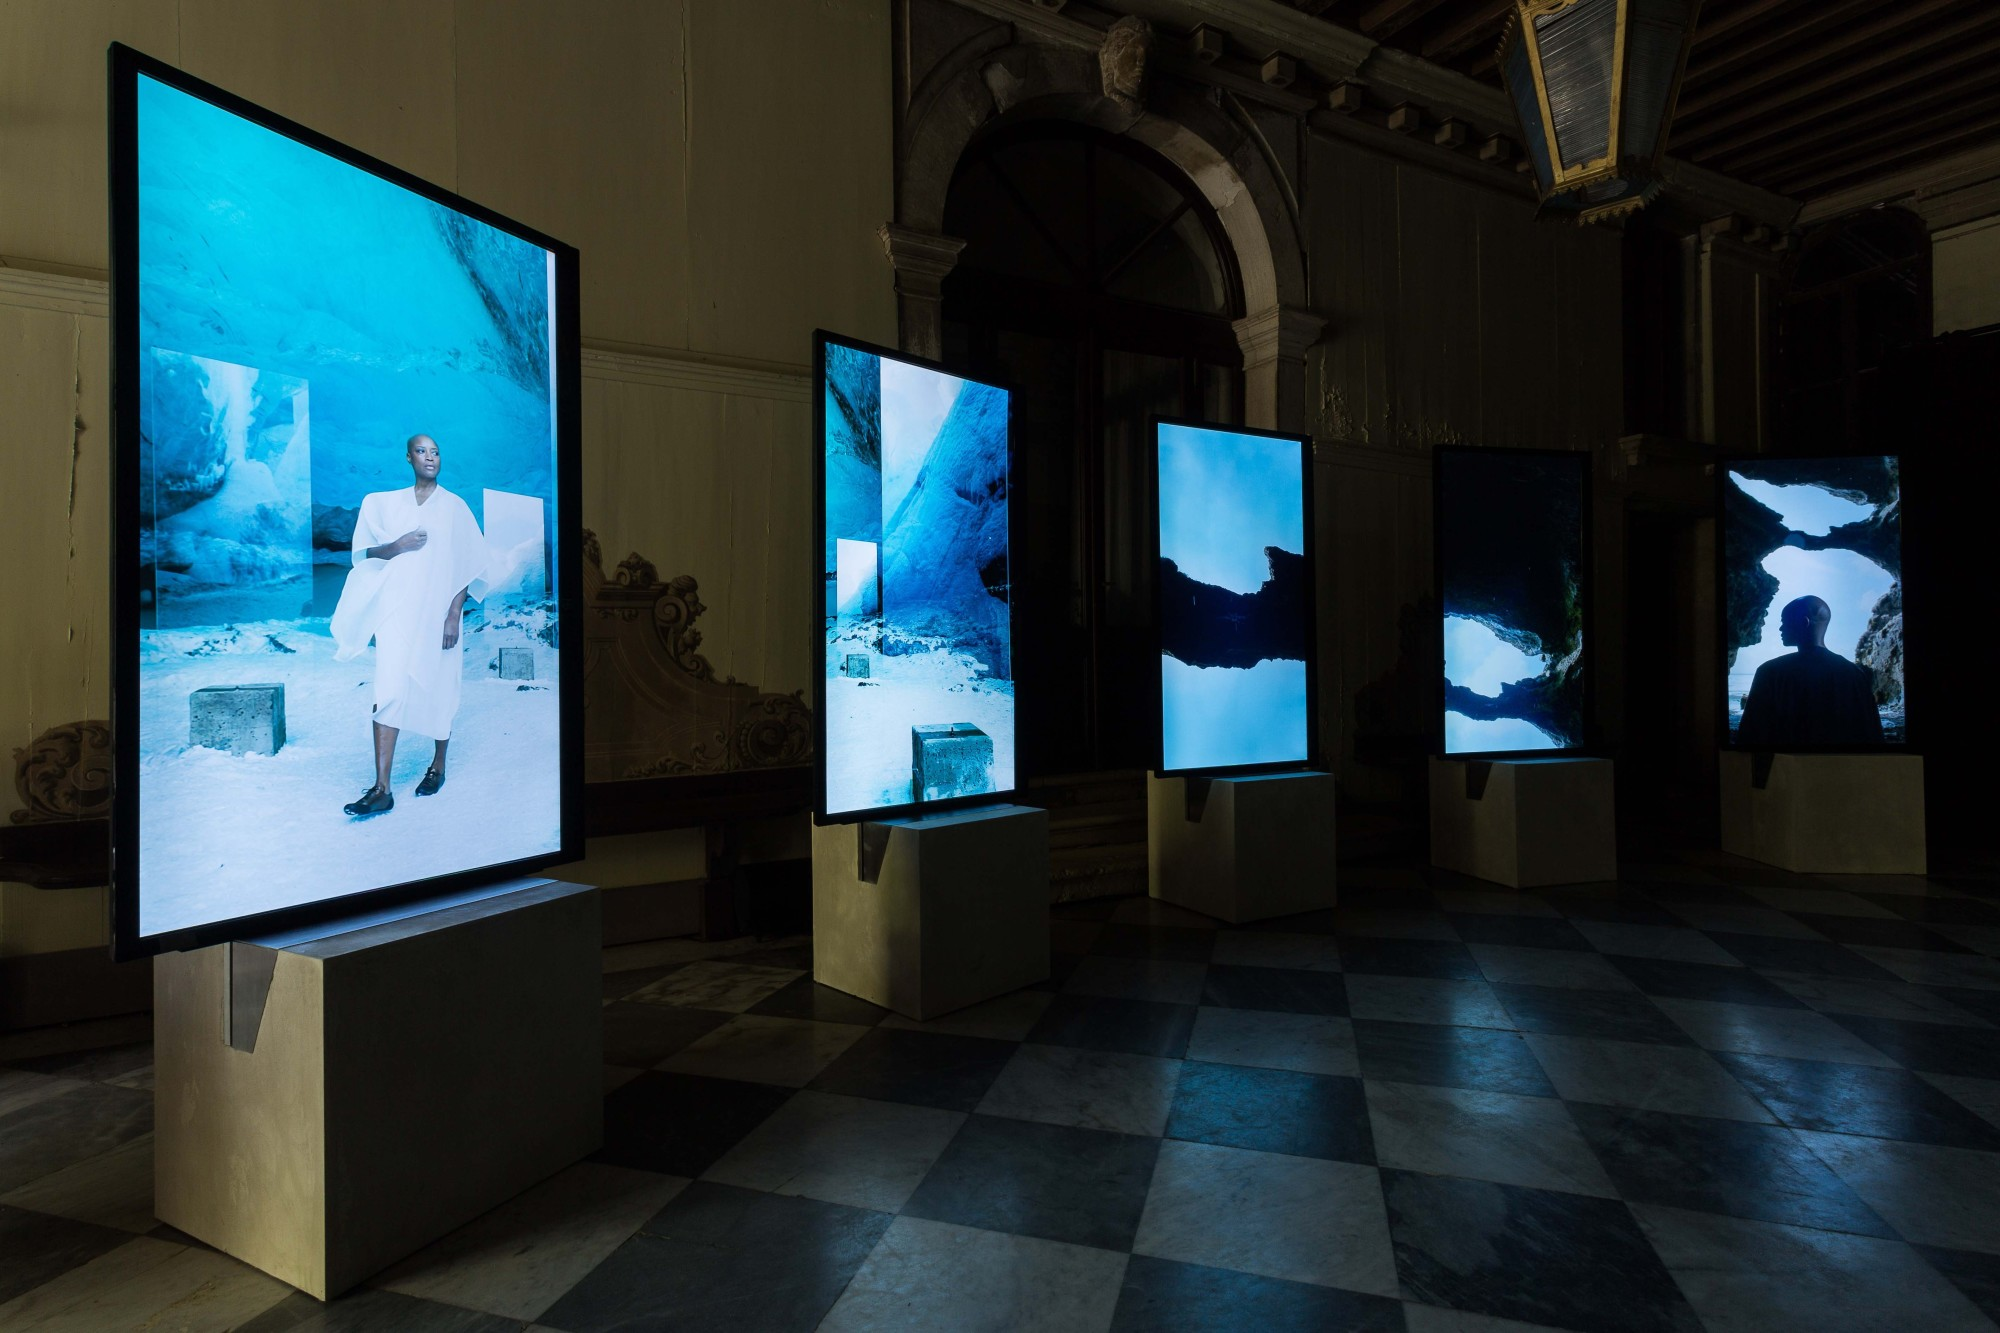 Stones Against Diamonds, Rolls-Royce Arts Programme. Palazzo Malipiero, Venice, 2015  58'28'', high definition video on 5 portrait screens, colour, stereo sound